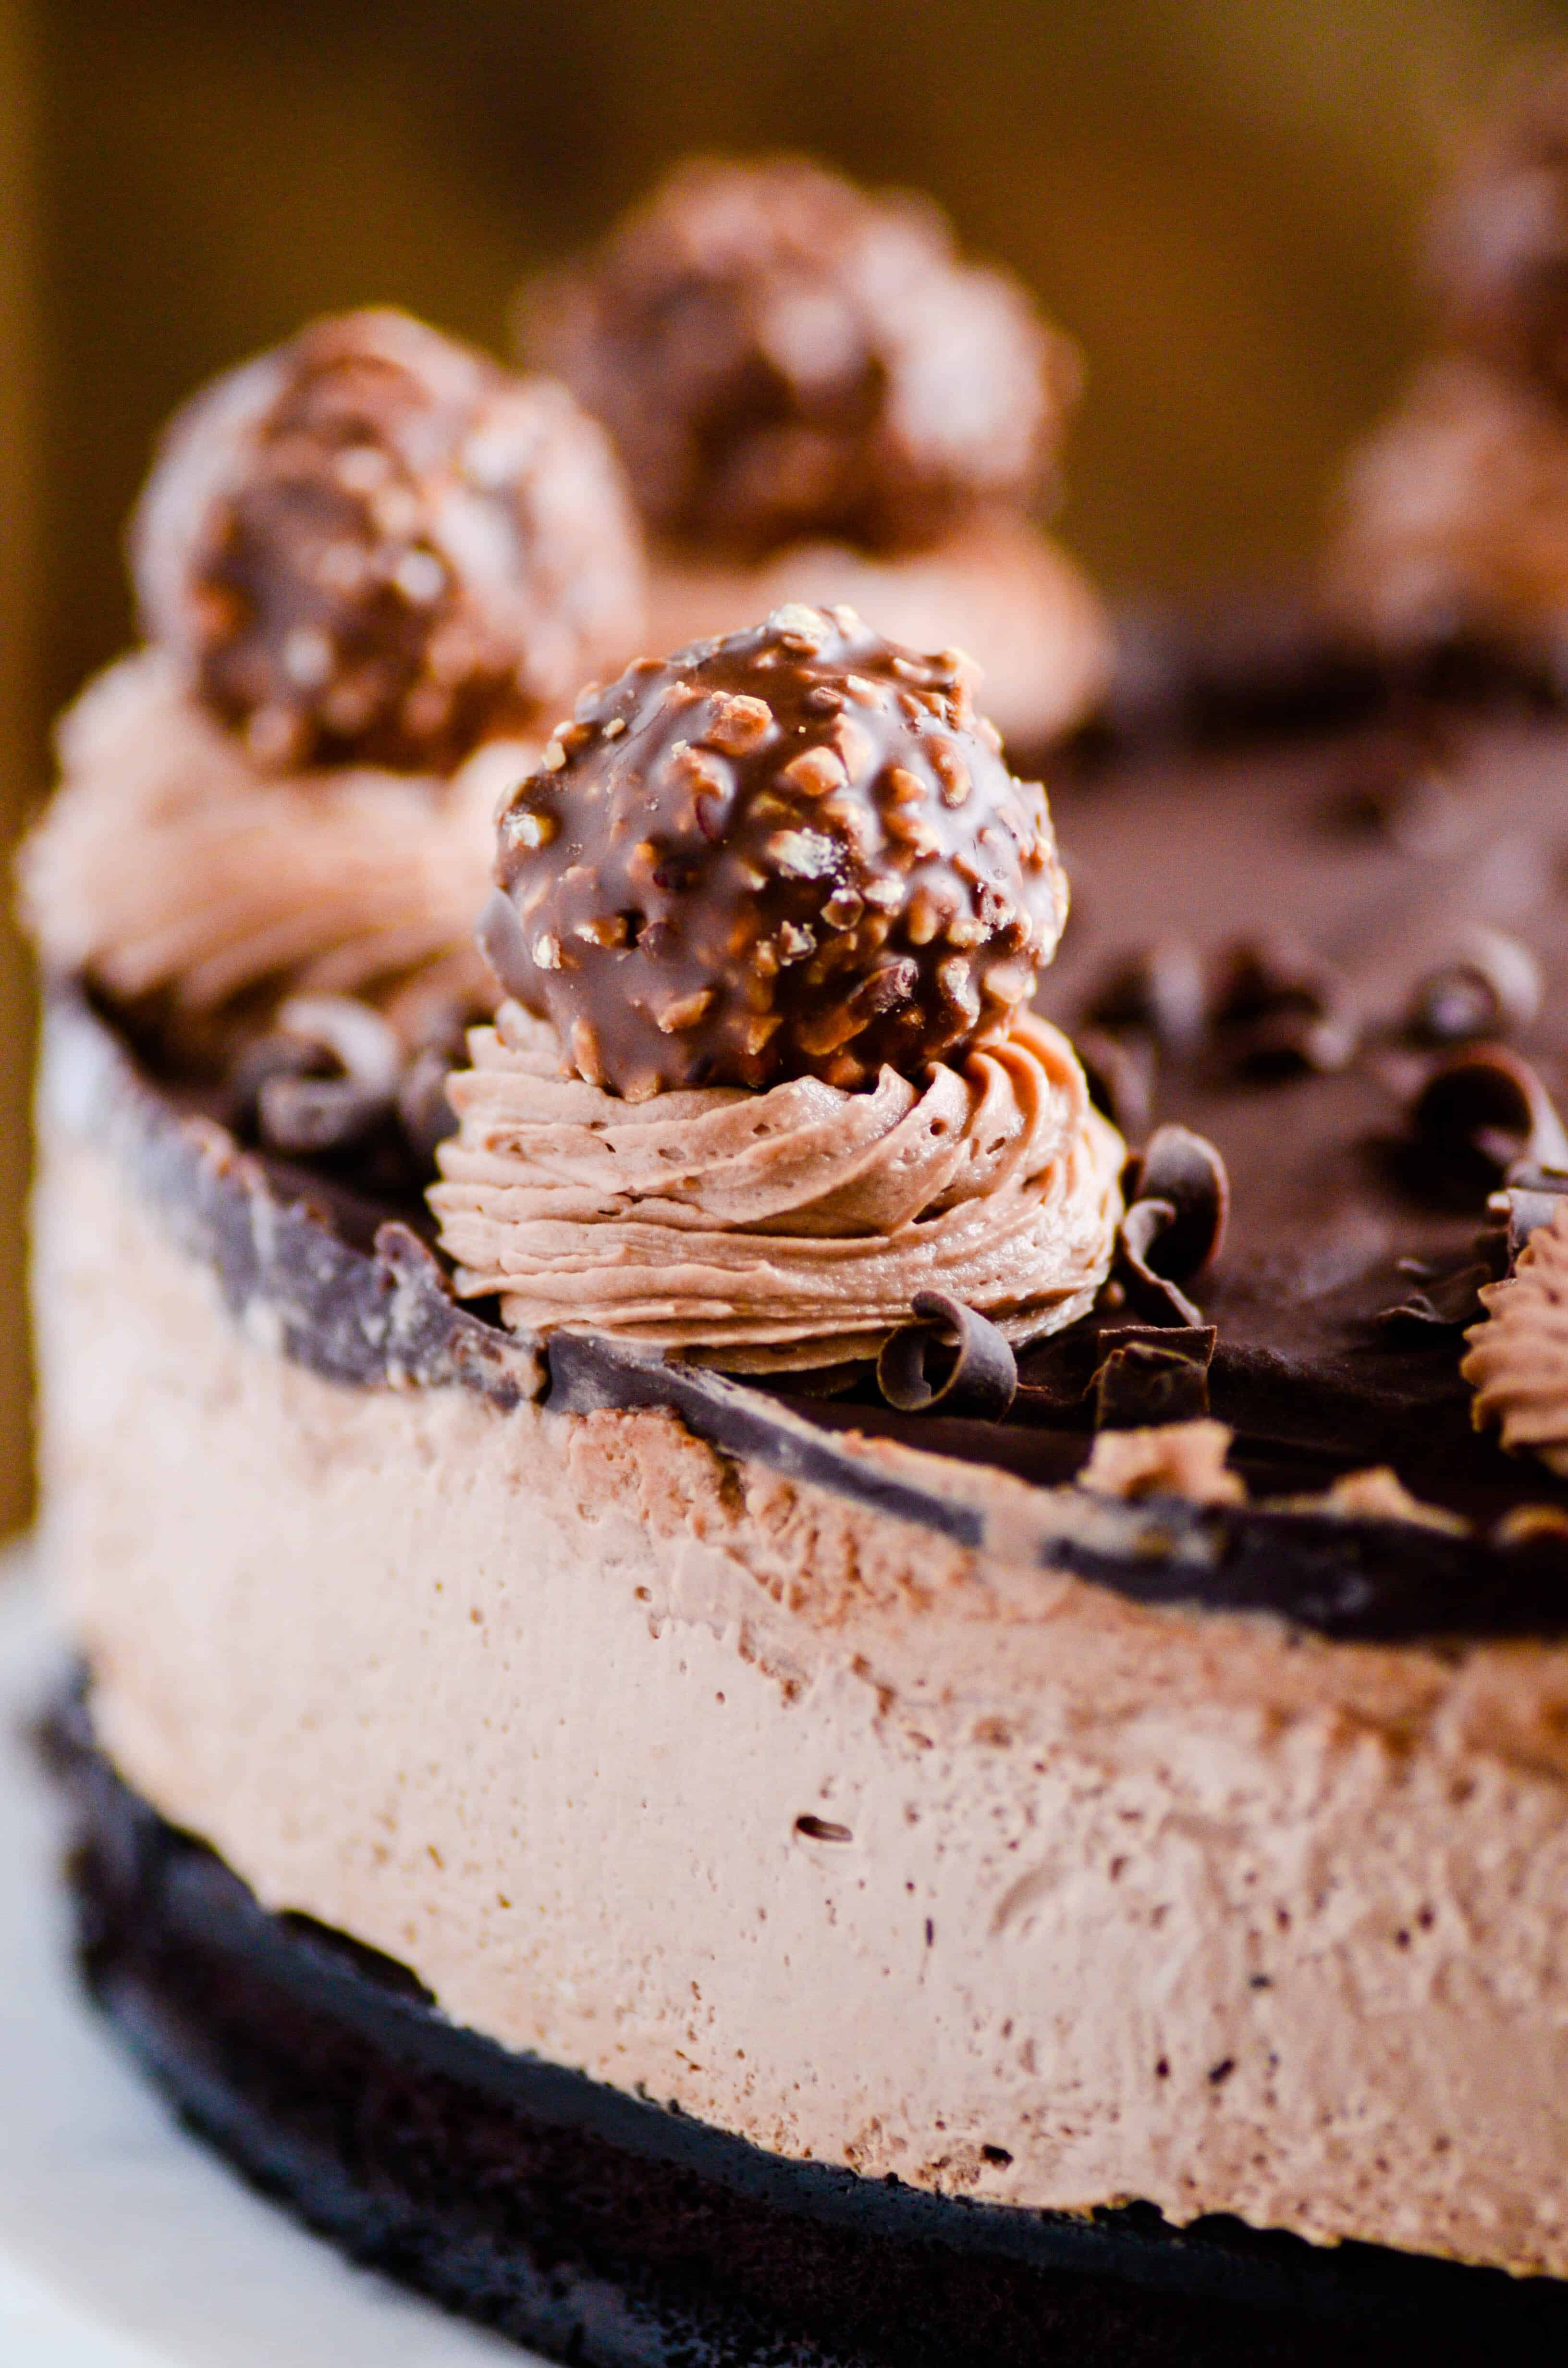 """This Nutella Mousse Cake is unreal! Layers of flourless chocolate cake, Nutella mousse, Nutella buttercream, chocolate ganache, and a Ferrero Rocher """"cherry"""" on top."""